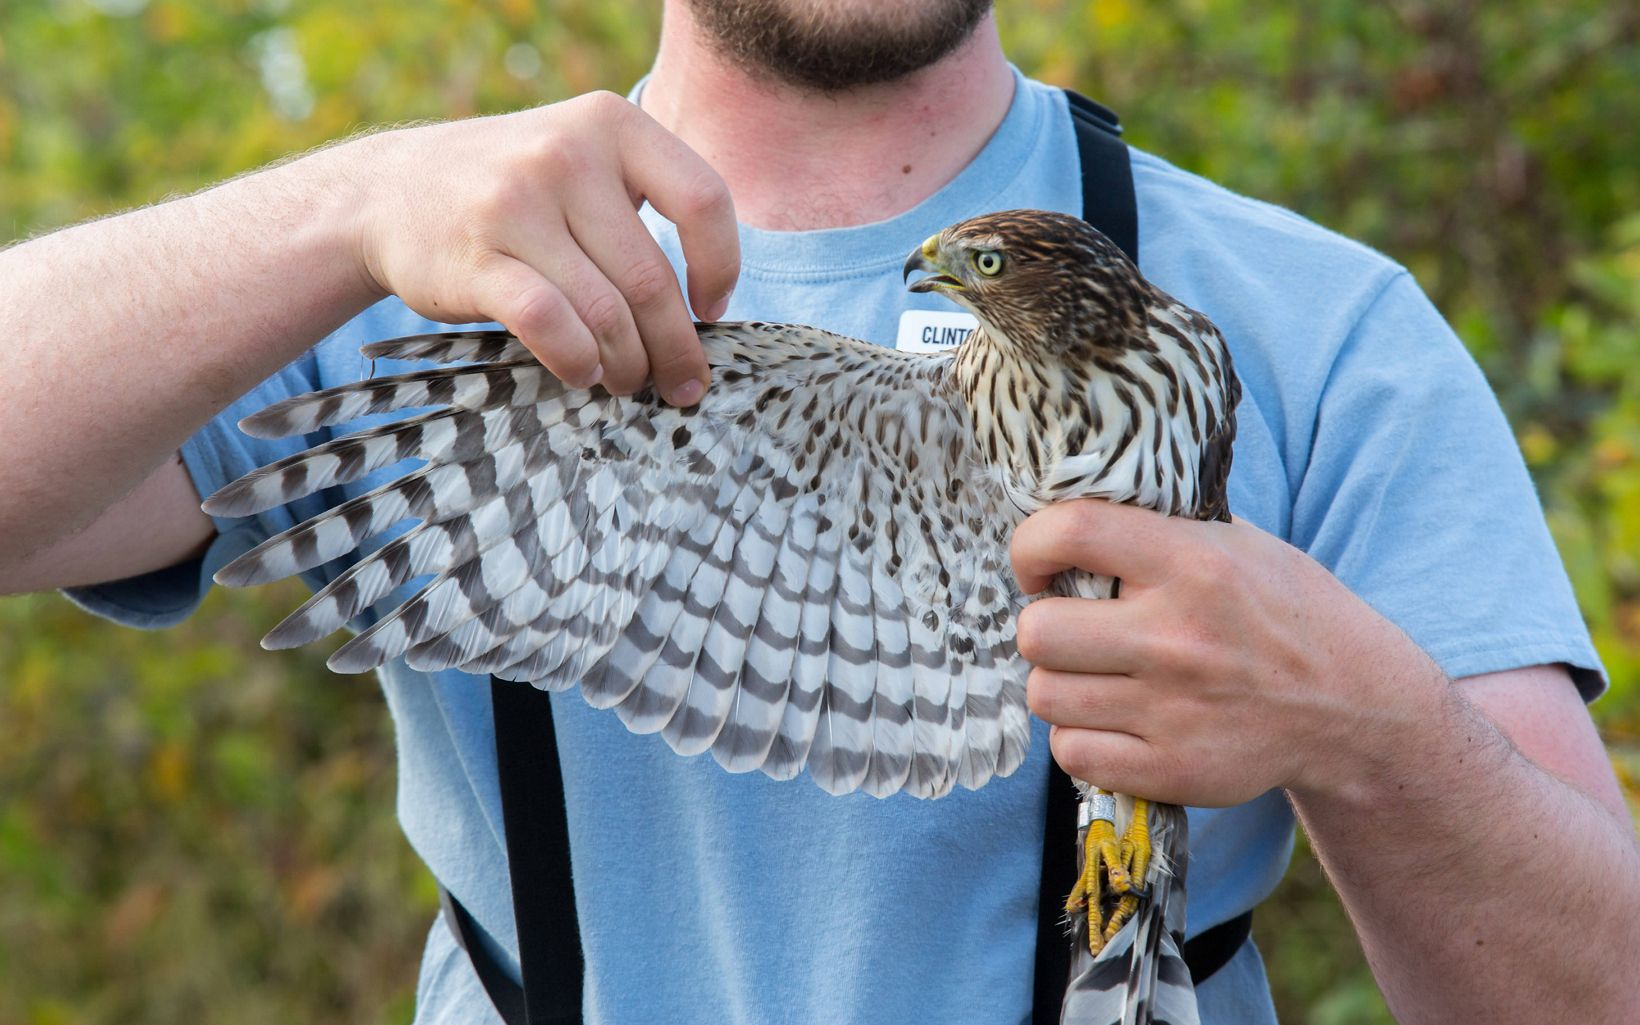 A naturalist at Hawks Ridge carefully extends the wing of a hawk during a demonstration.